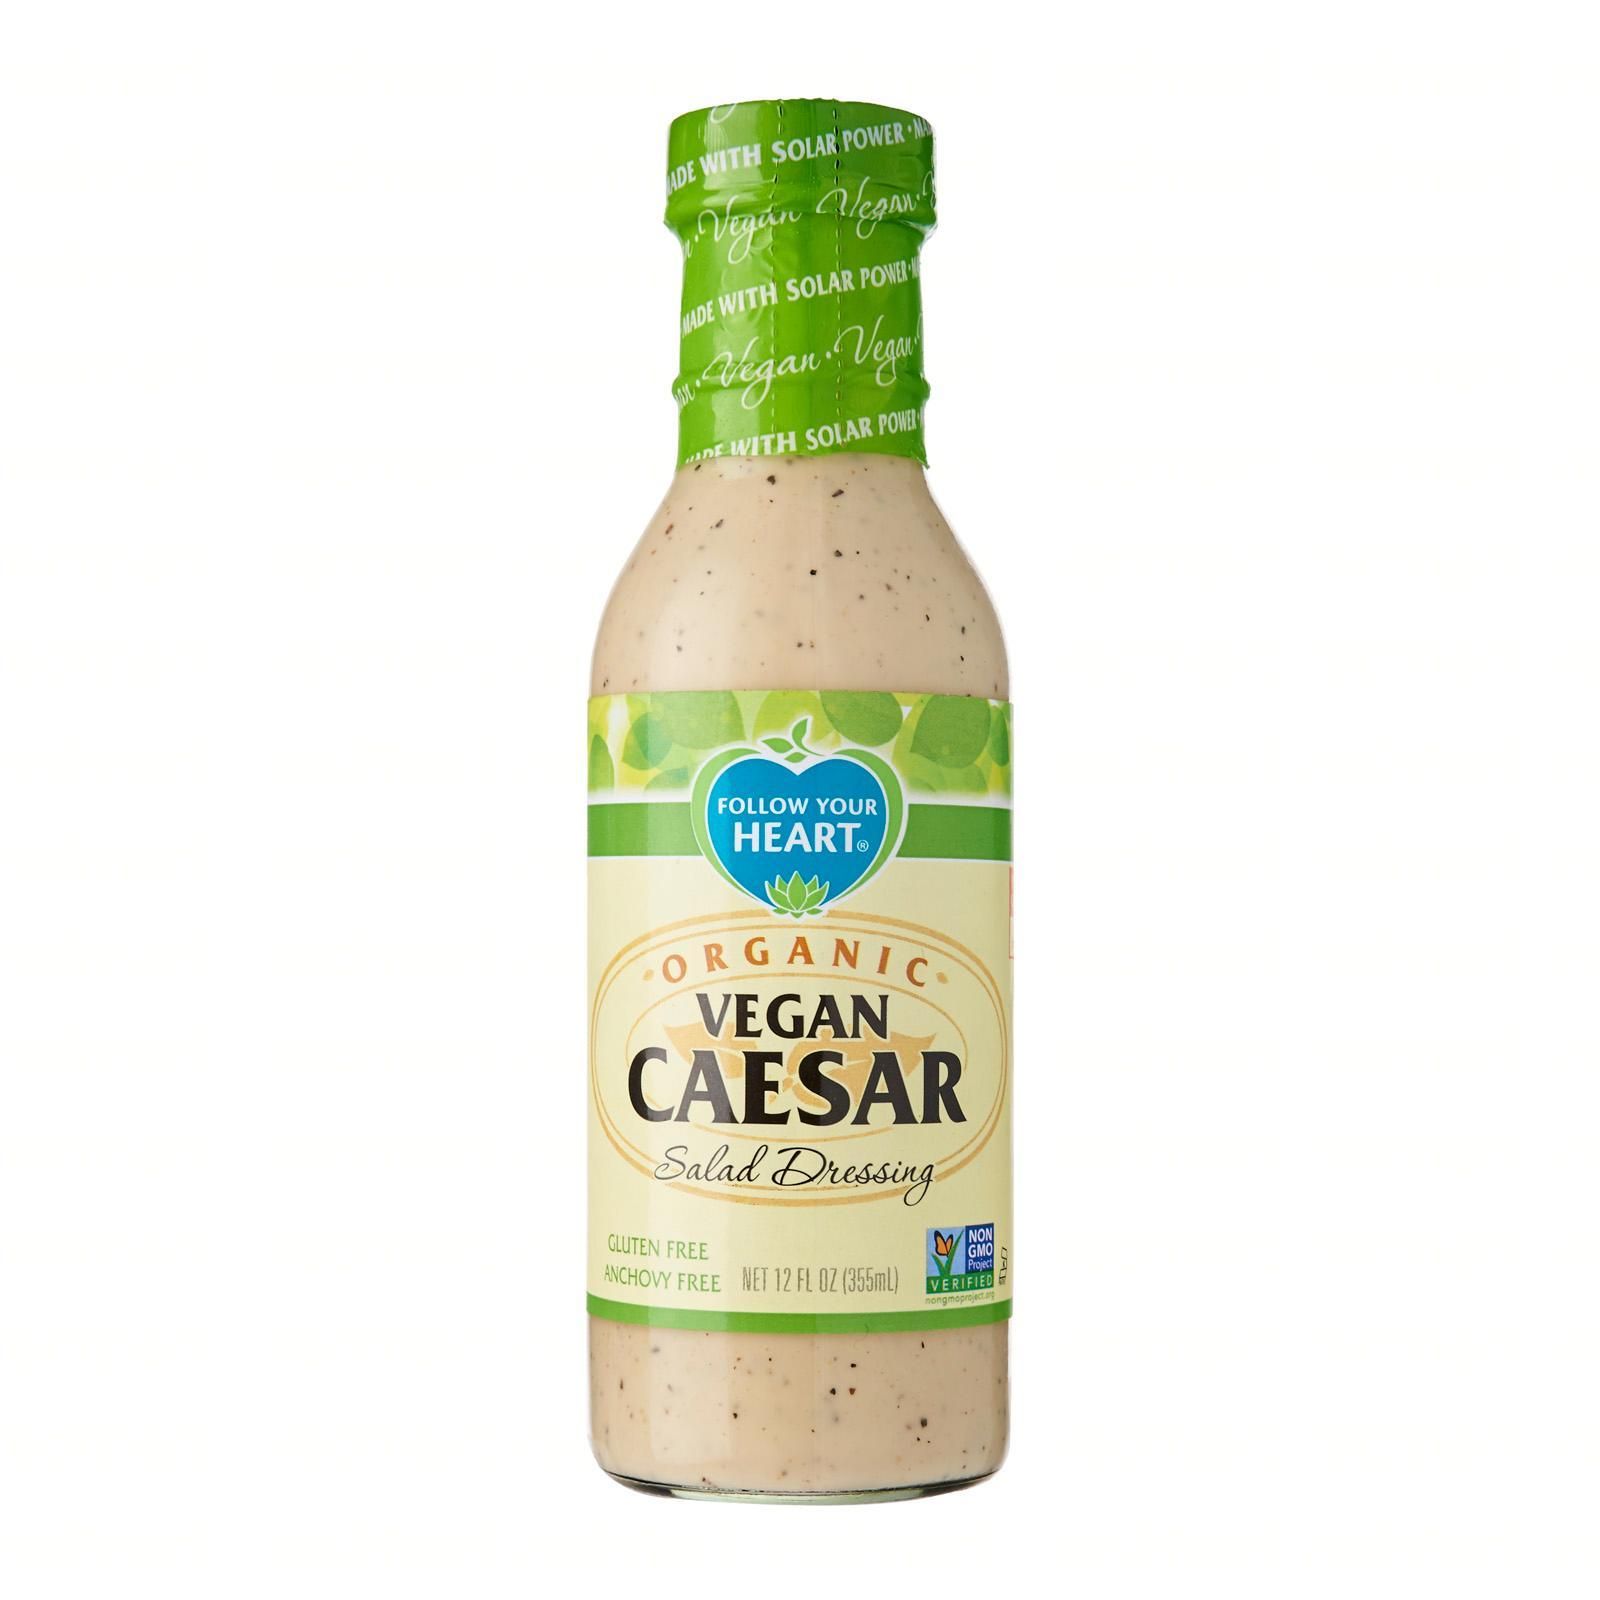 Follow Your Heart Organic Vegan Caesar Dressing Salad Dressing